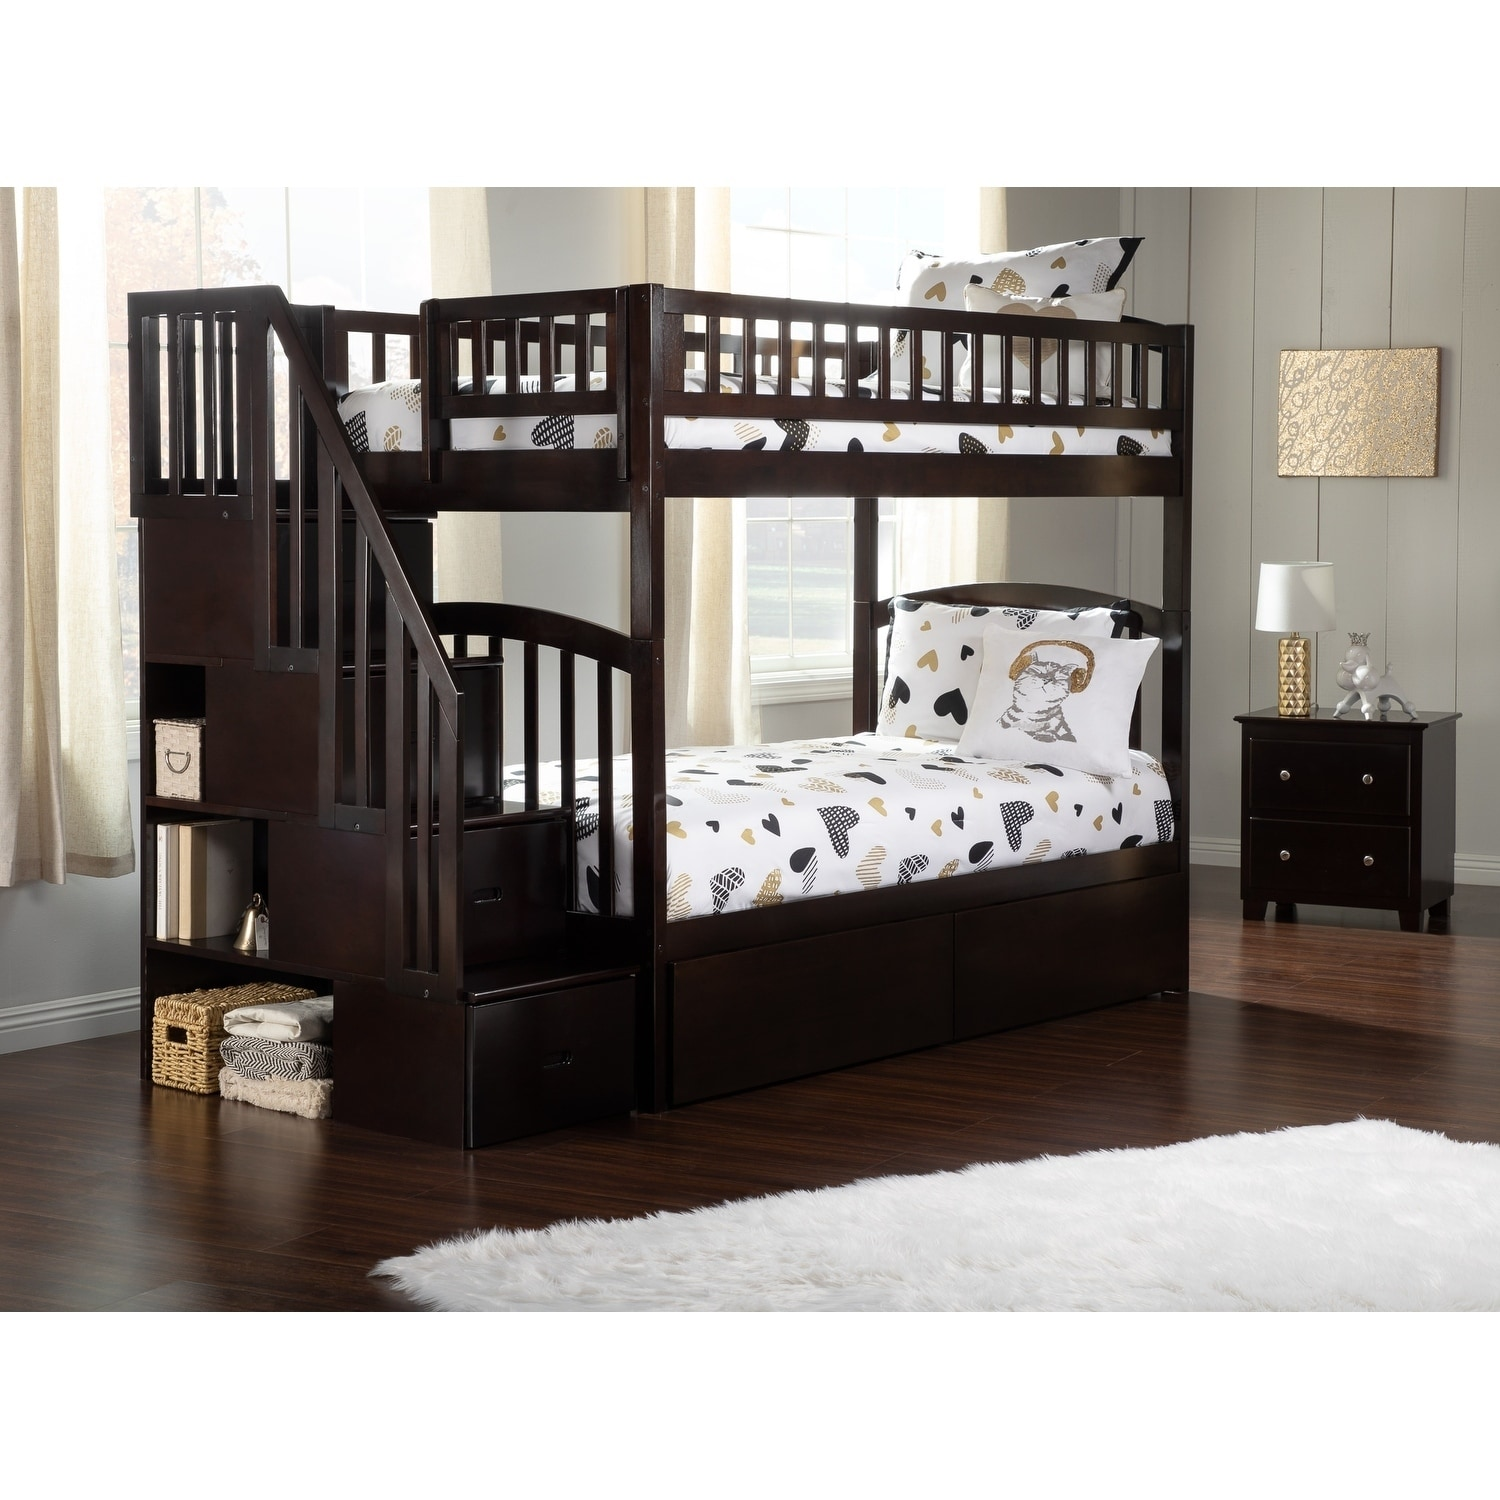 Espresso Bunk Beds With Stairs Laptrinhx News